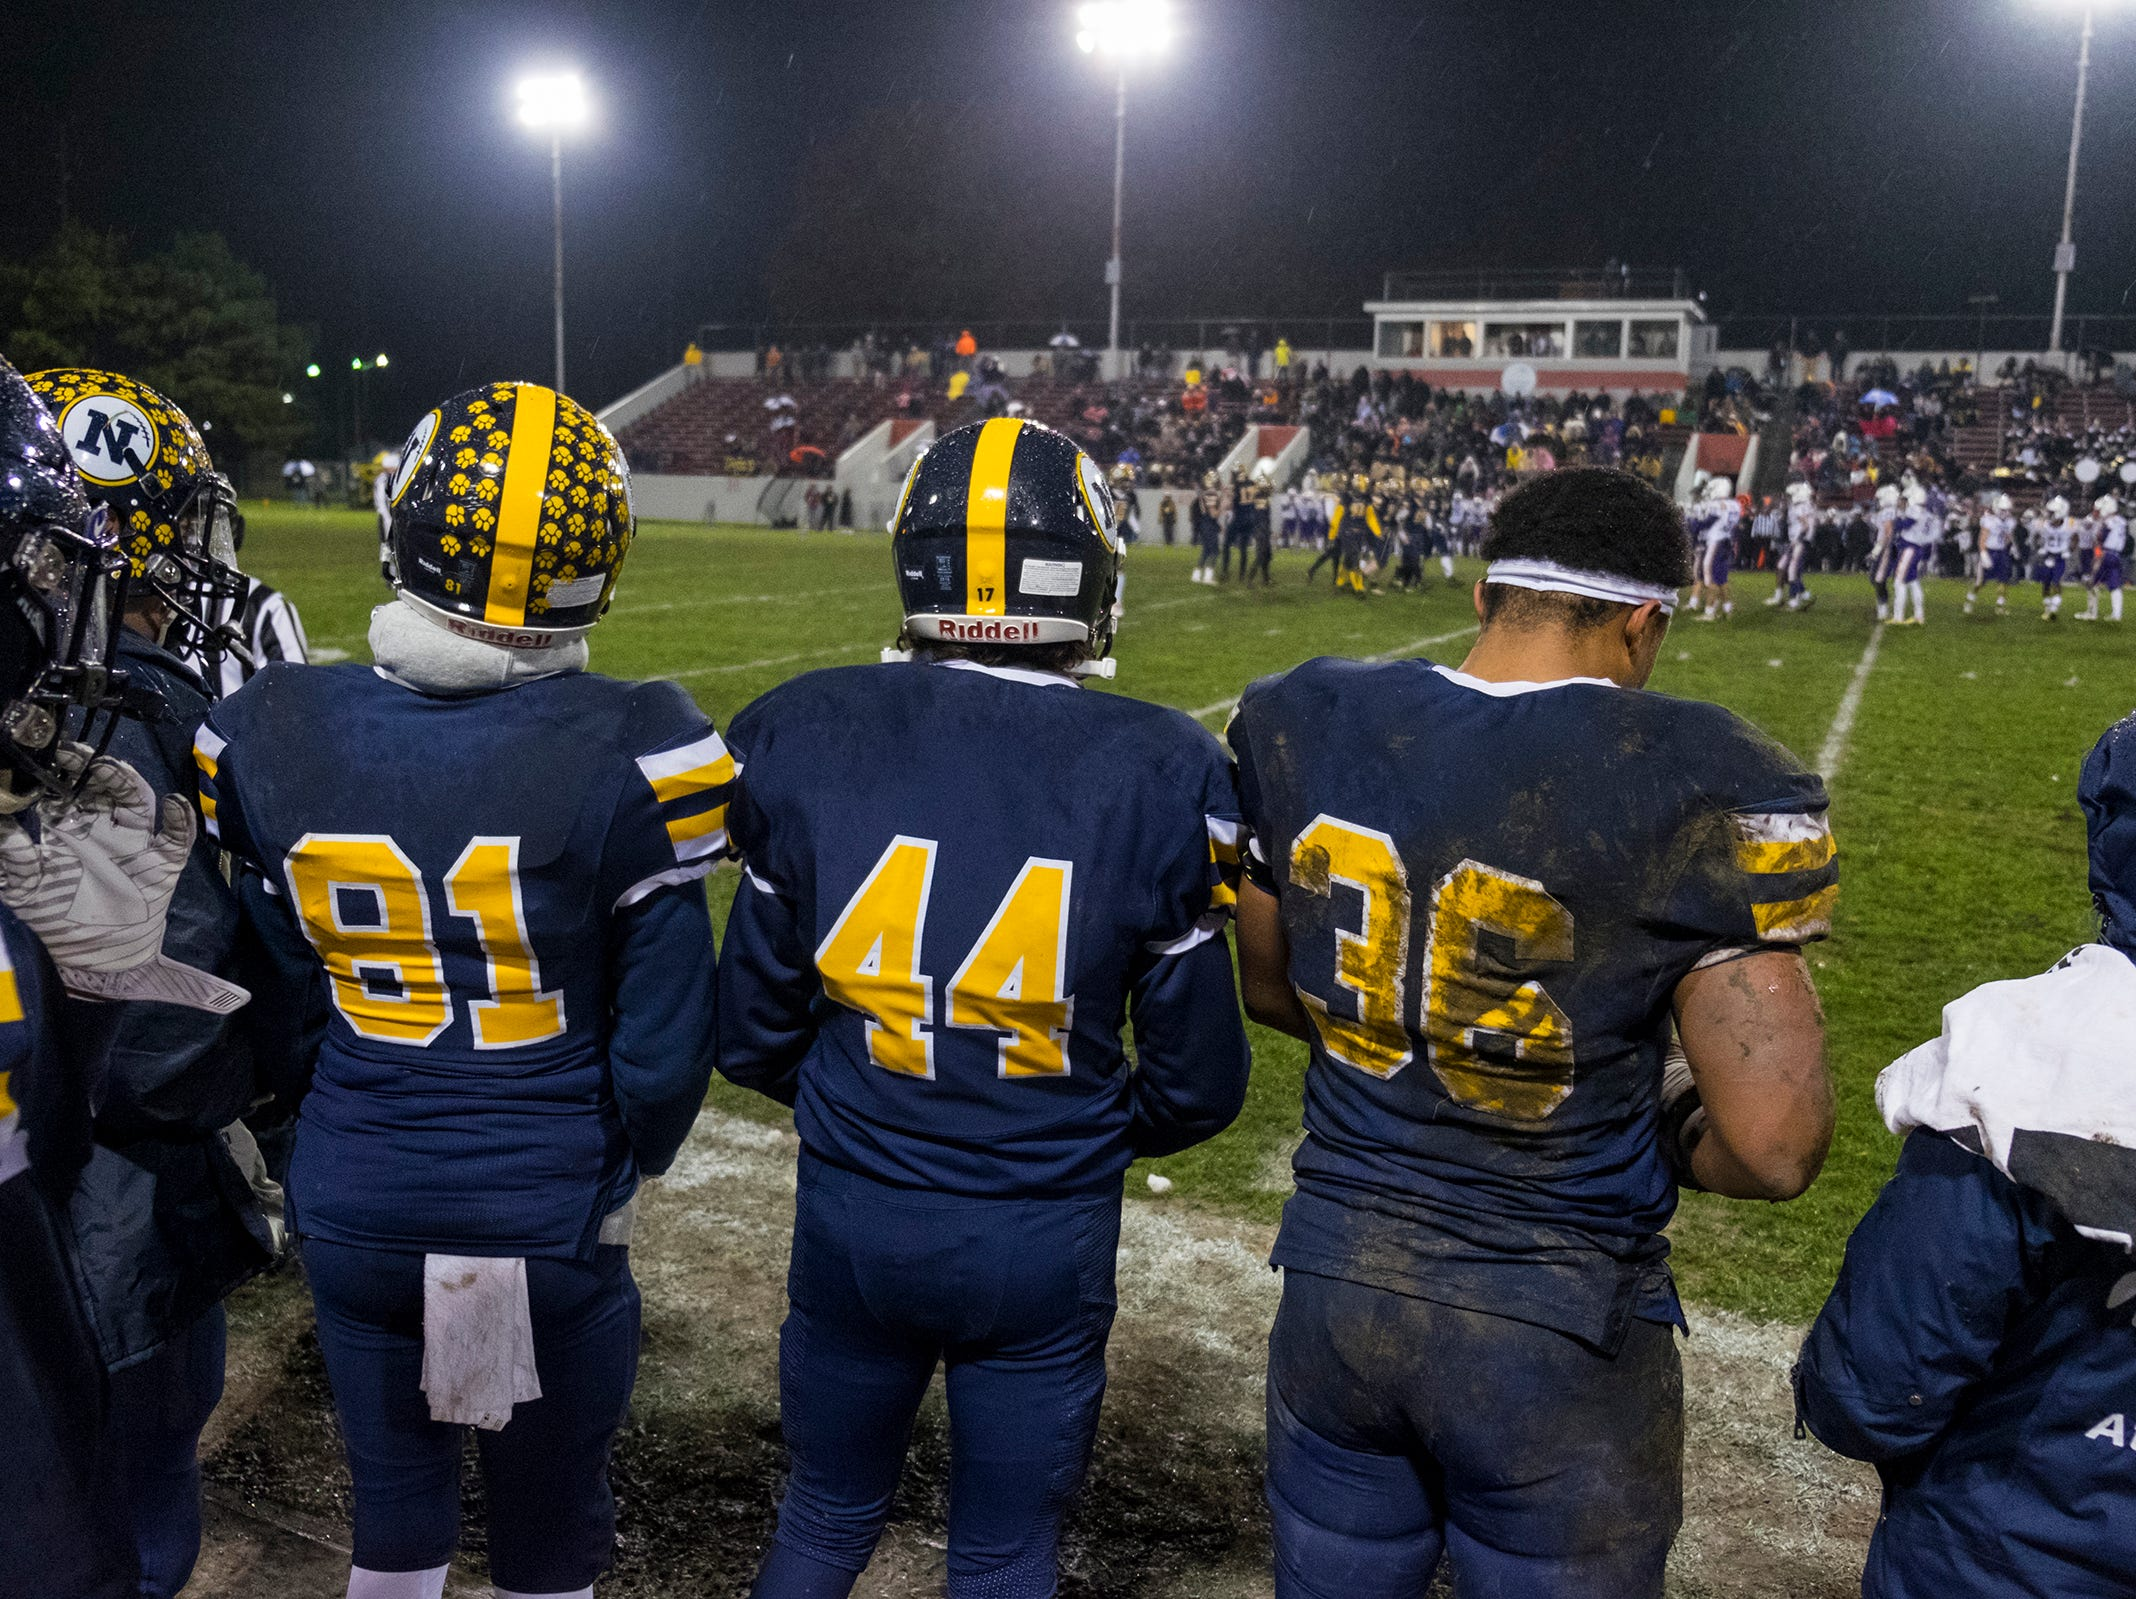 Wet and muddy players from Port Huron Northern High School watch the MHSAA Division 2 regional championship game against Warren De La Salle from the sidelines Friday, Nov. 9, 2018 at Memorial Stadium.